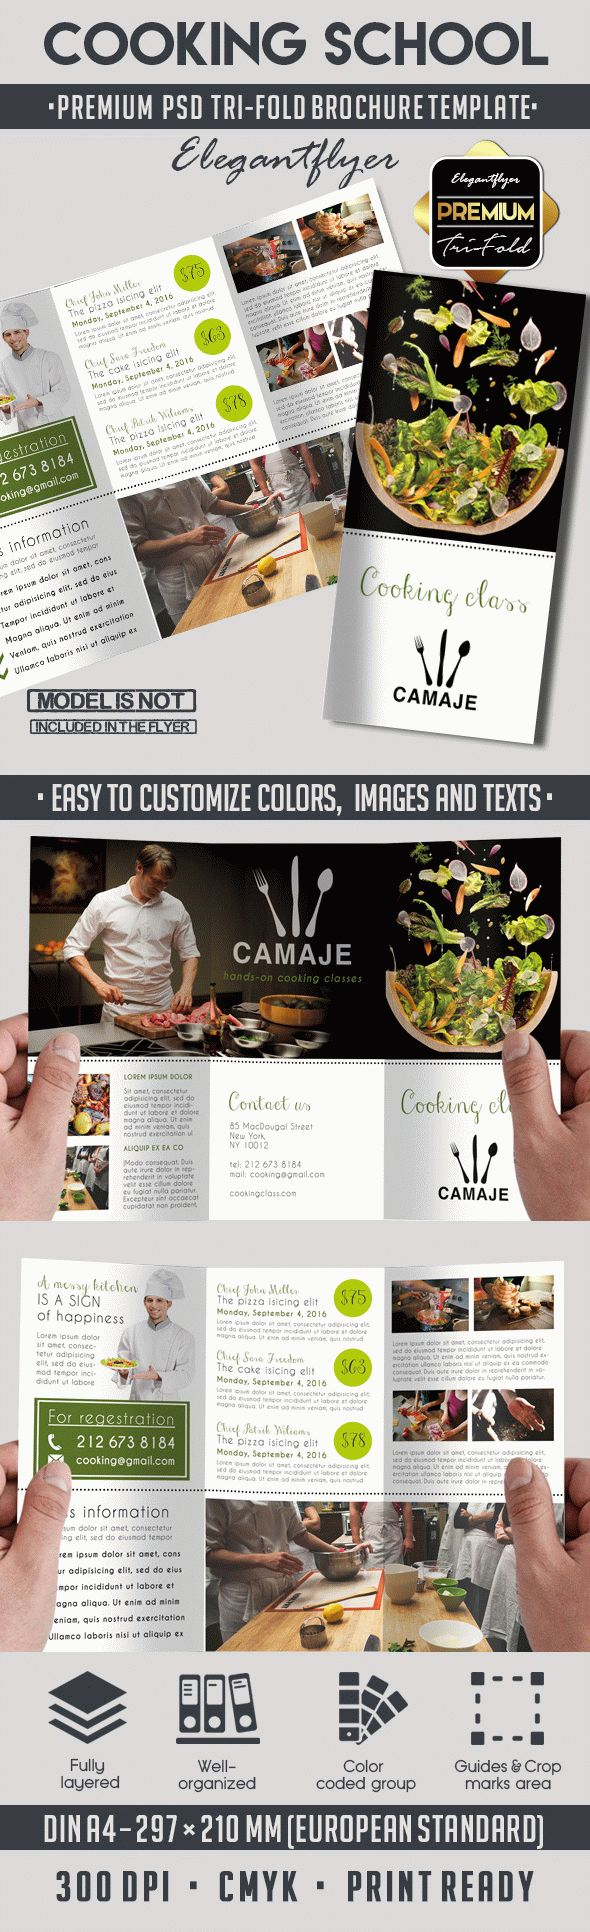 The cooking school – Premium Tri-Fold PSD Brochure Template